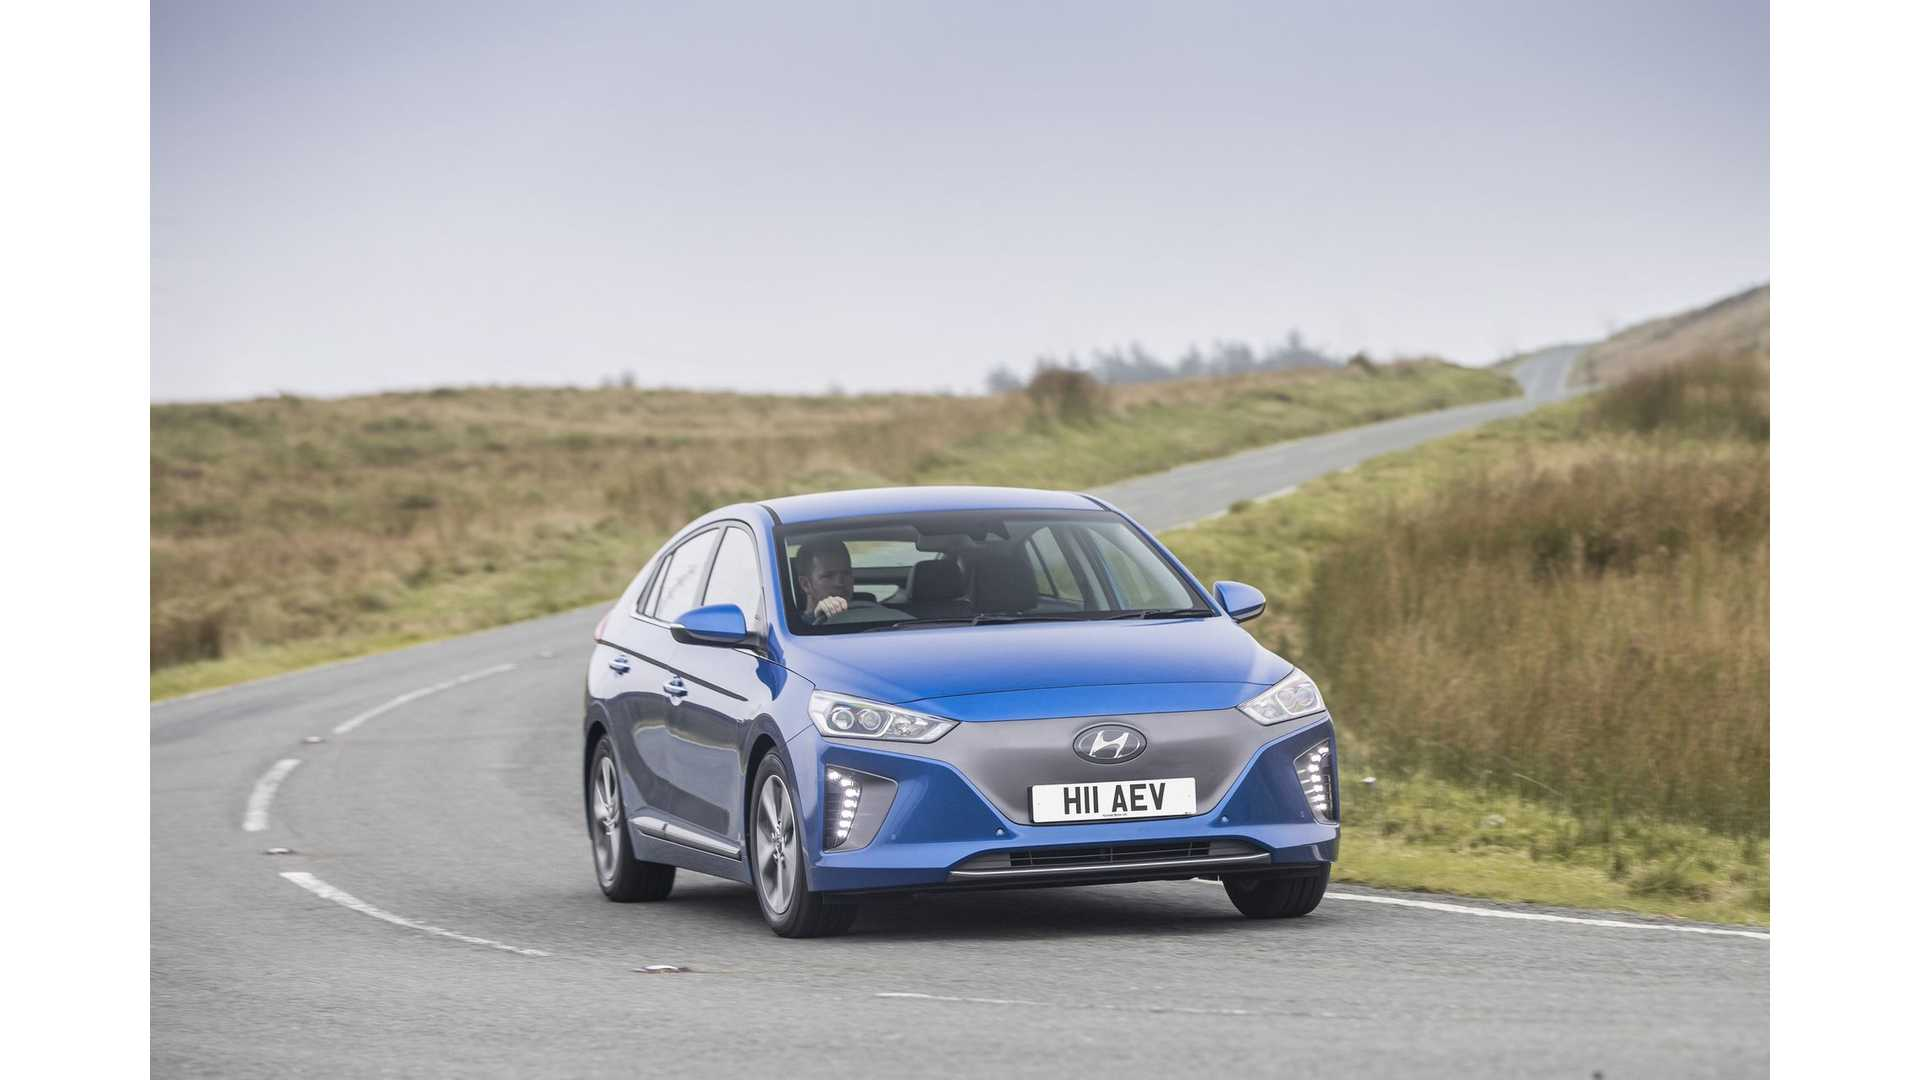 Hyundai Ioniq Electric Gets Detailed Epa Ratings City Highway Combined Becomes U S Most Efficient Vehicle